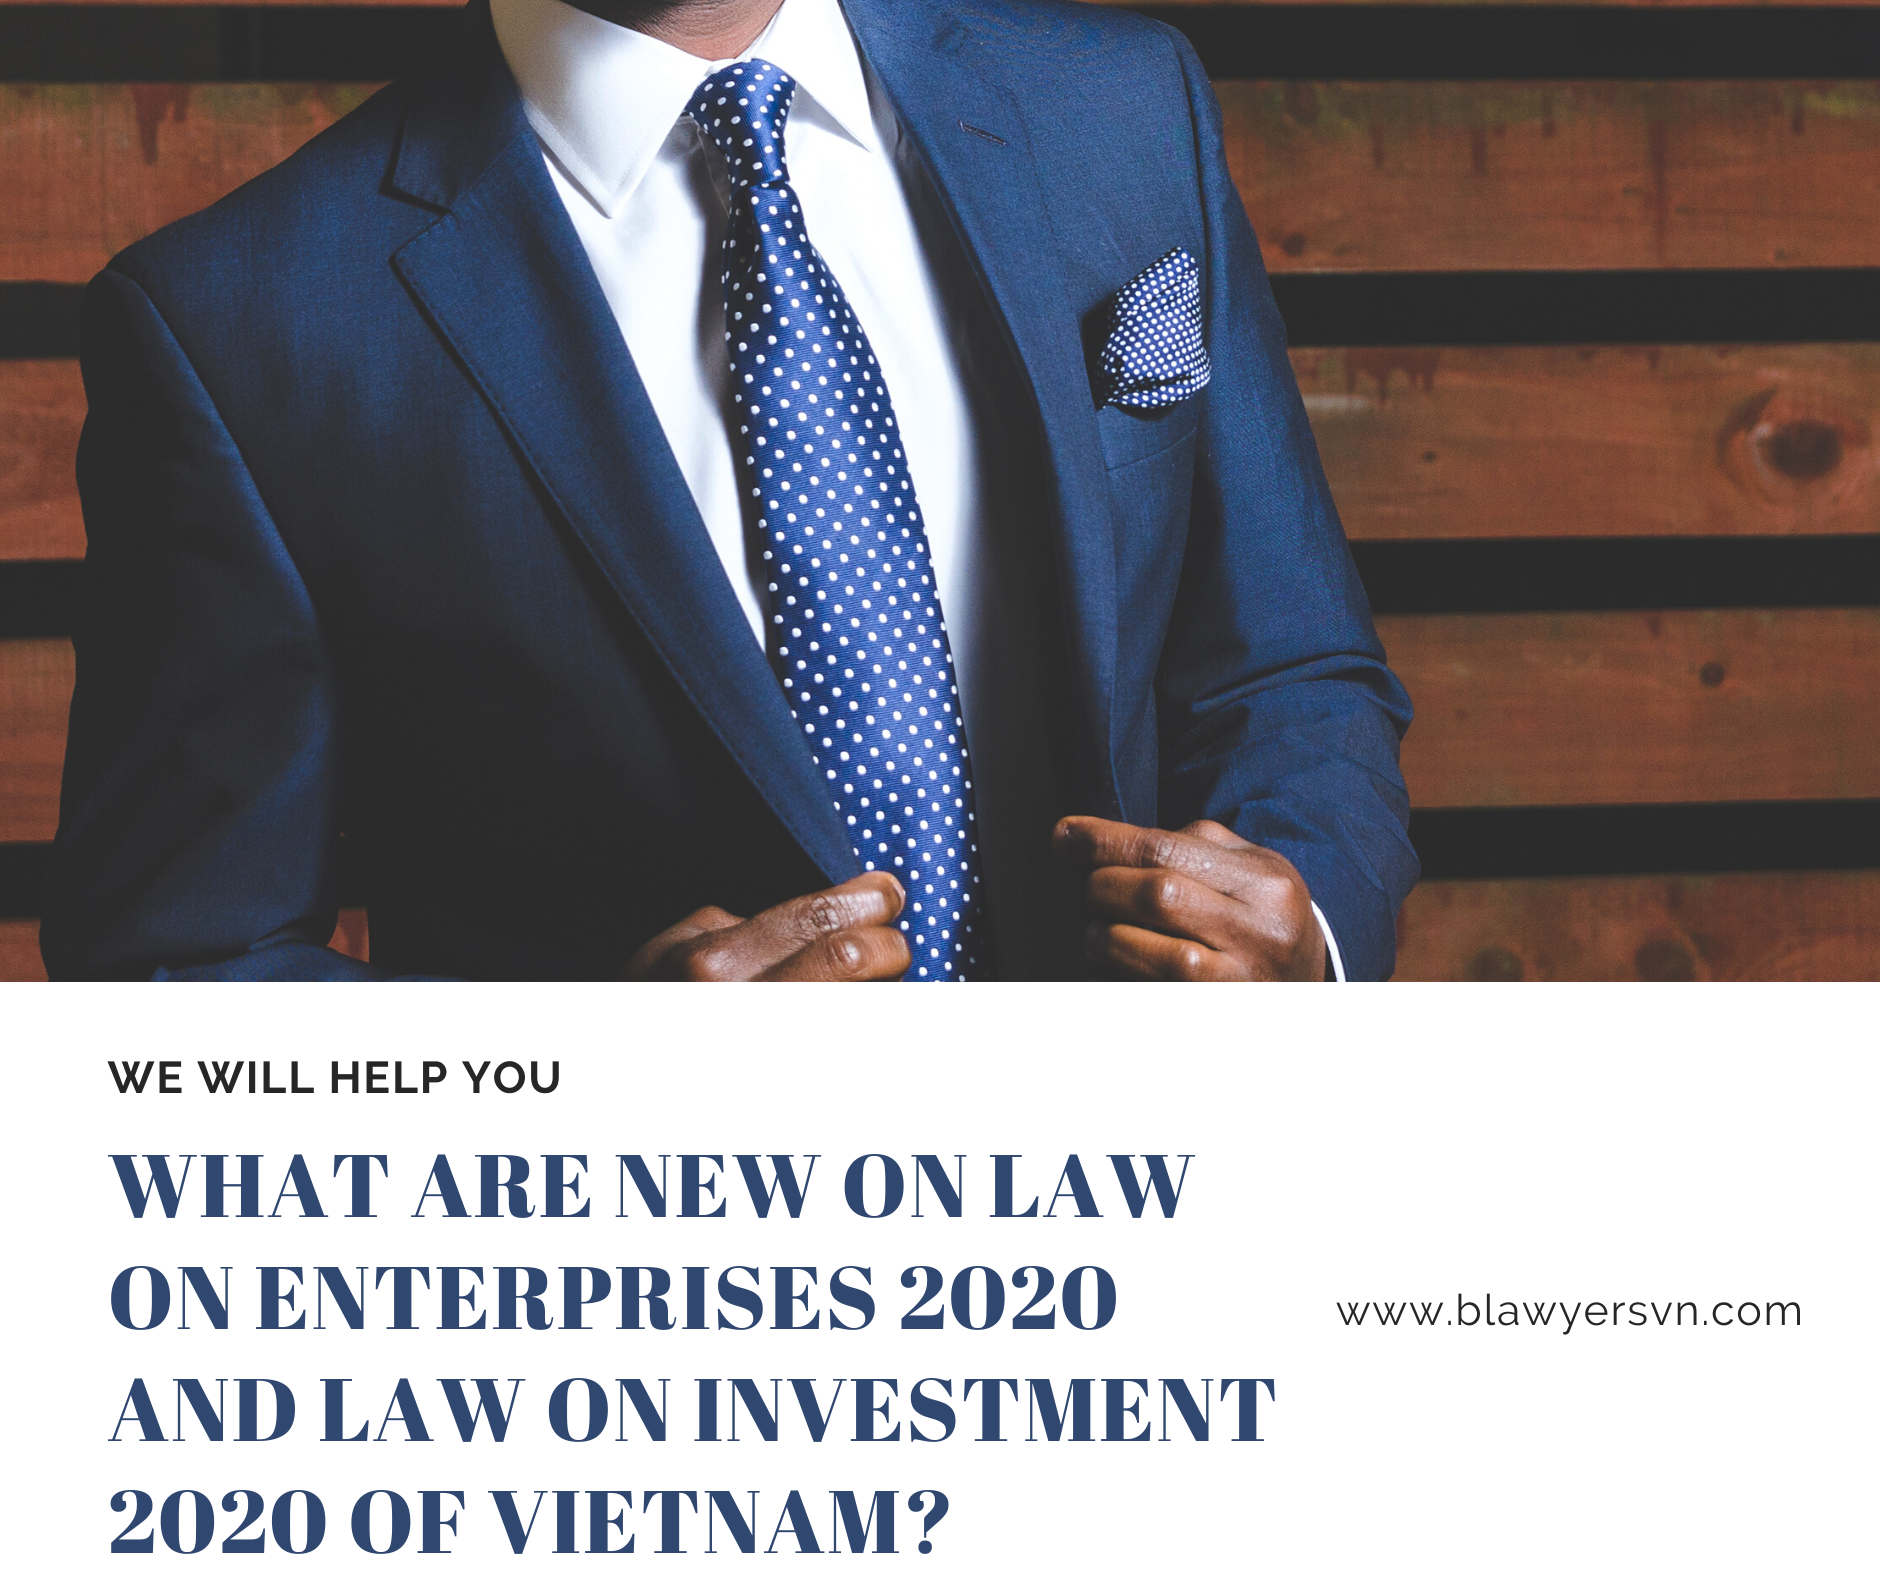 New on Law on Enterprises and Law on Investment 2020